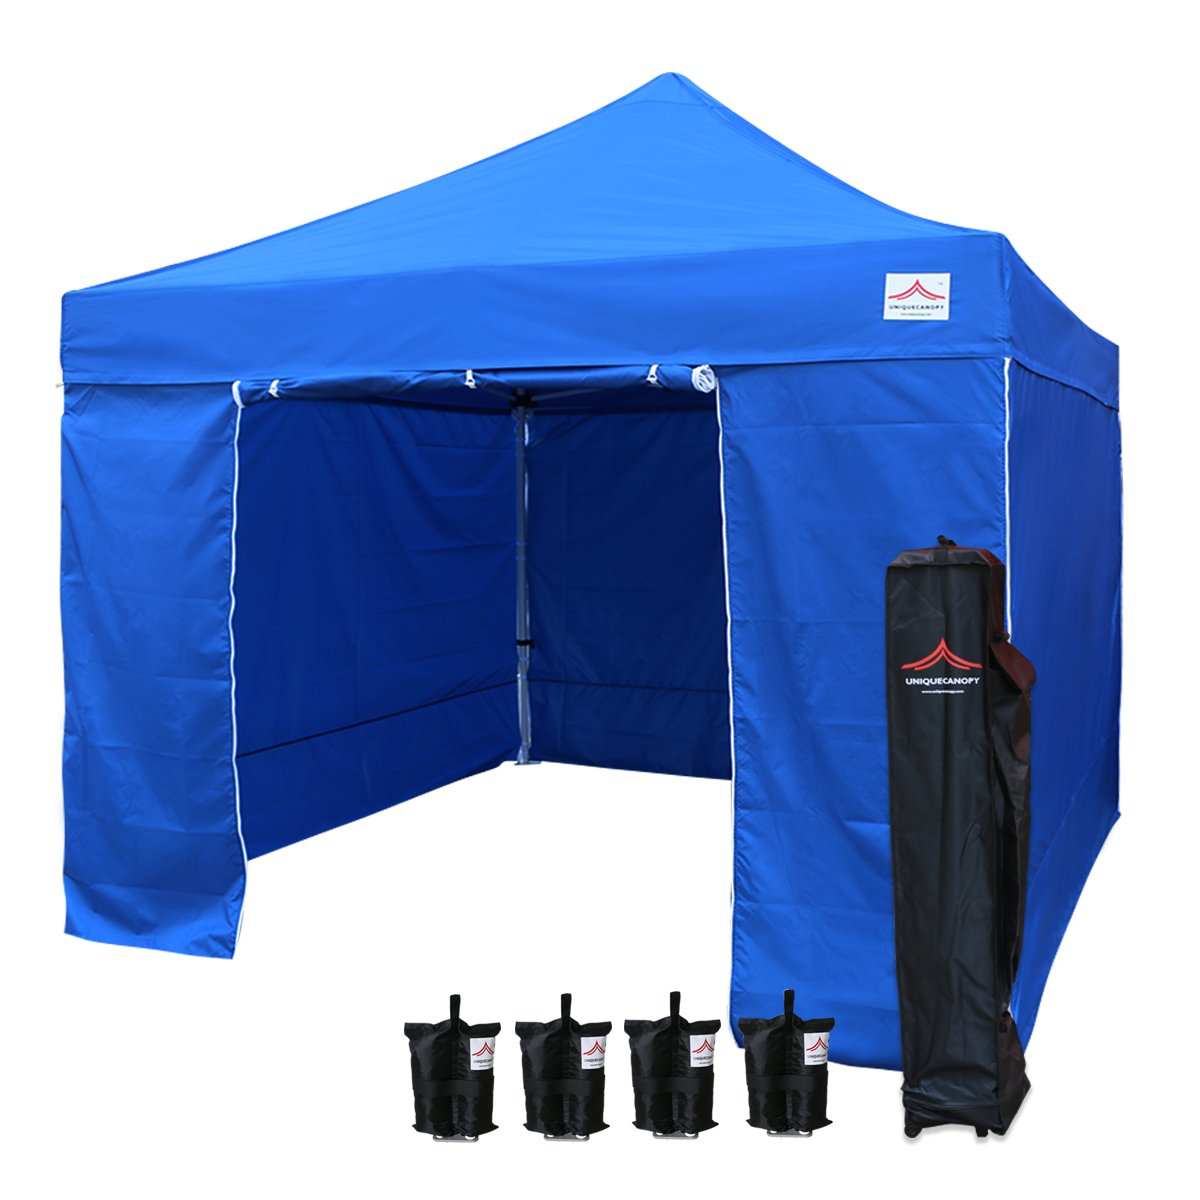 UNIQUECANOPY 10x10 Ez Pop up Canopy Tents for Parties Outdoor Portable Instant Folded Commercial Popup Shelter, with 4 Zippered Side Walls and Wheeled Carrying Bag Bonus 4 Sandbags Blue